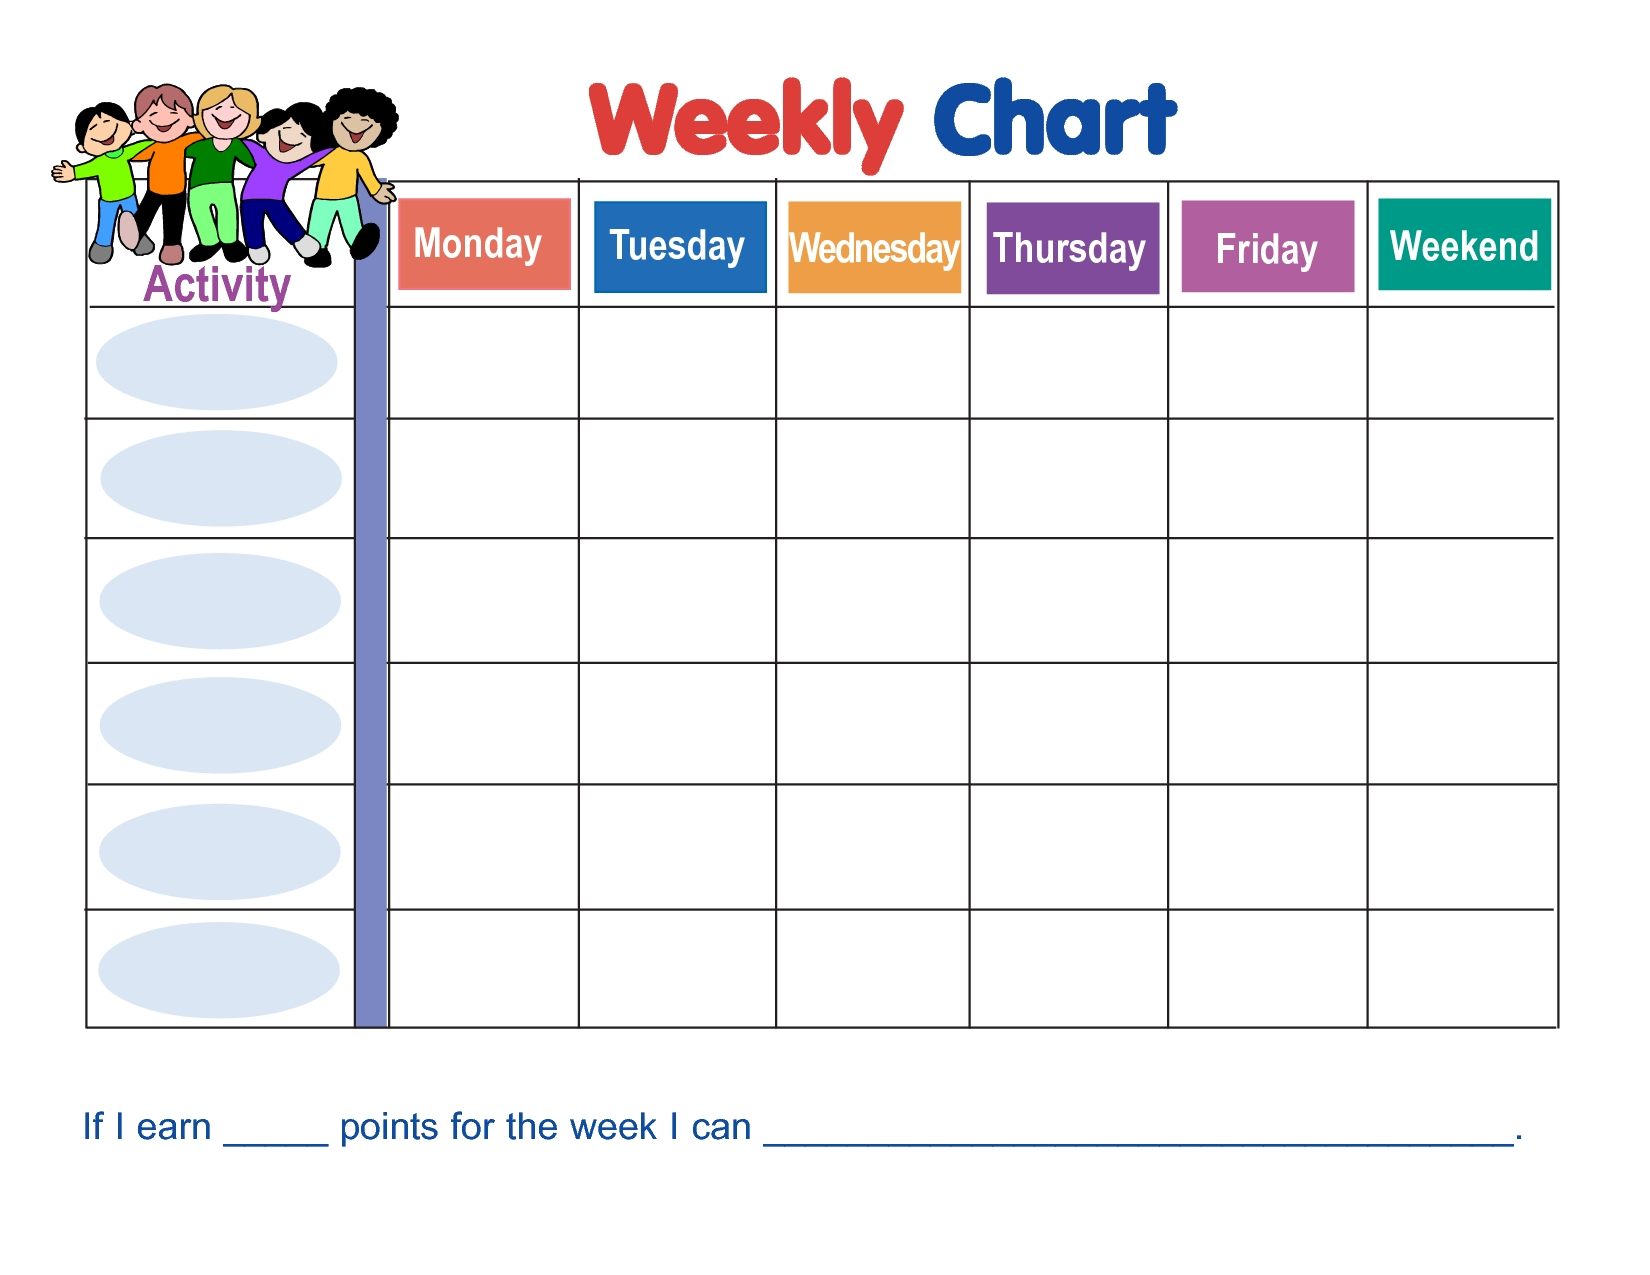 Weekly Behavior Chart Template (With Images) | Behavior